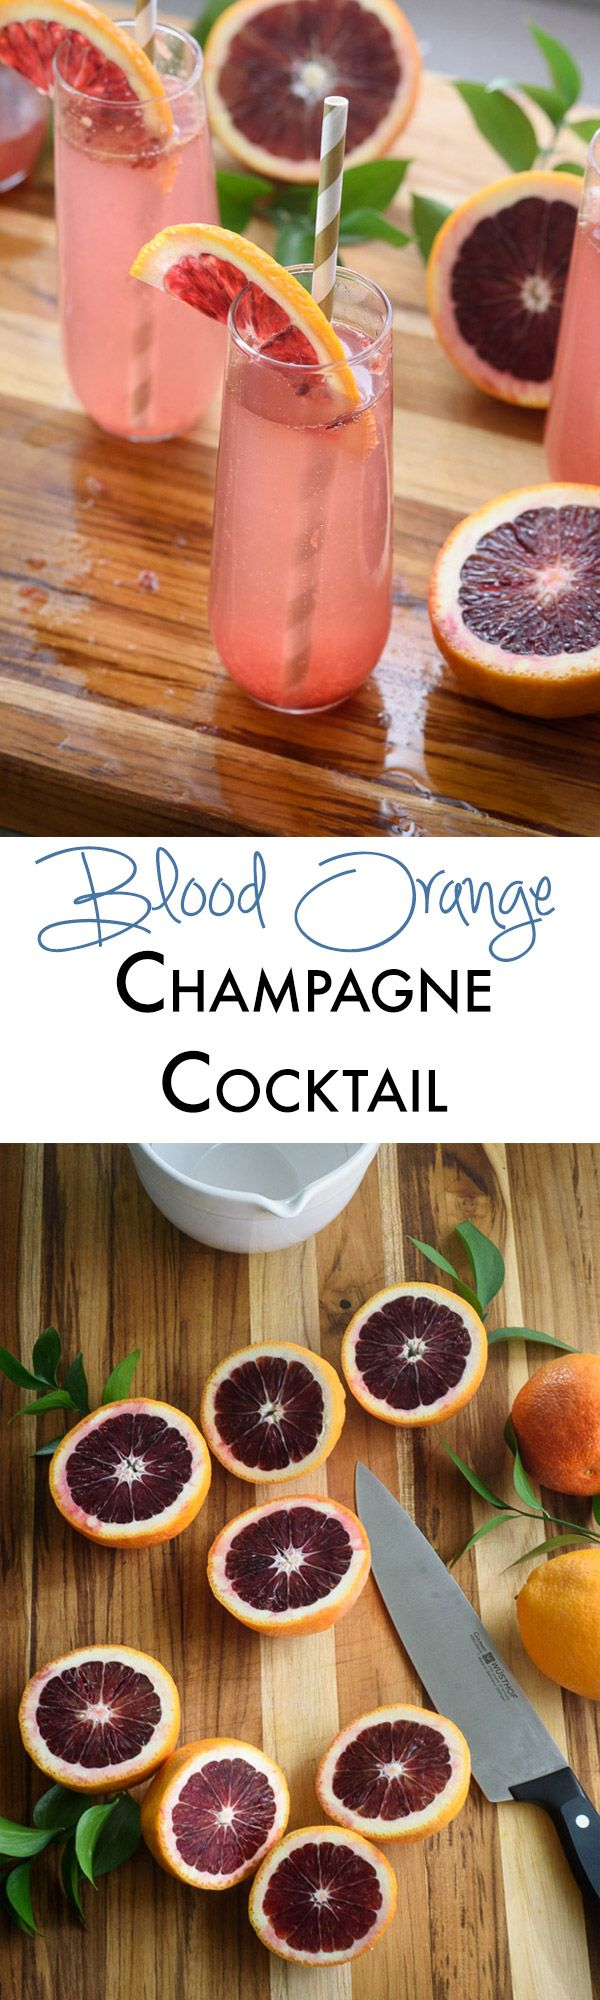 This blood orange champagne cocktail is the perfect easy cocktail recipe for entertaining!